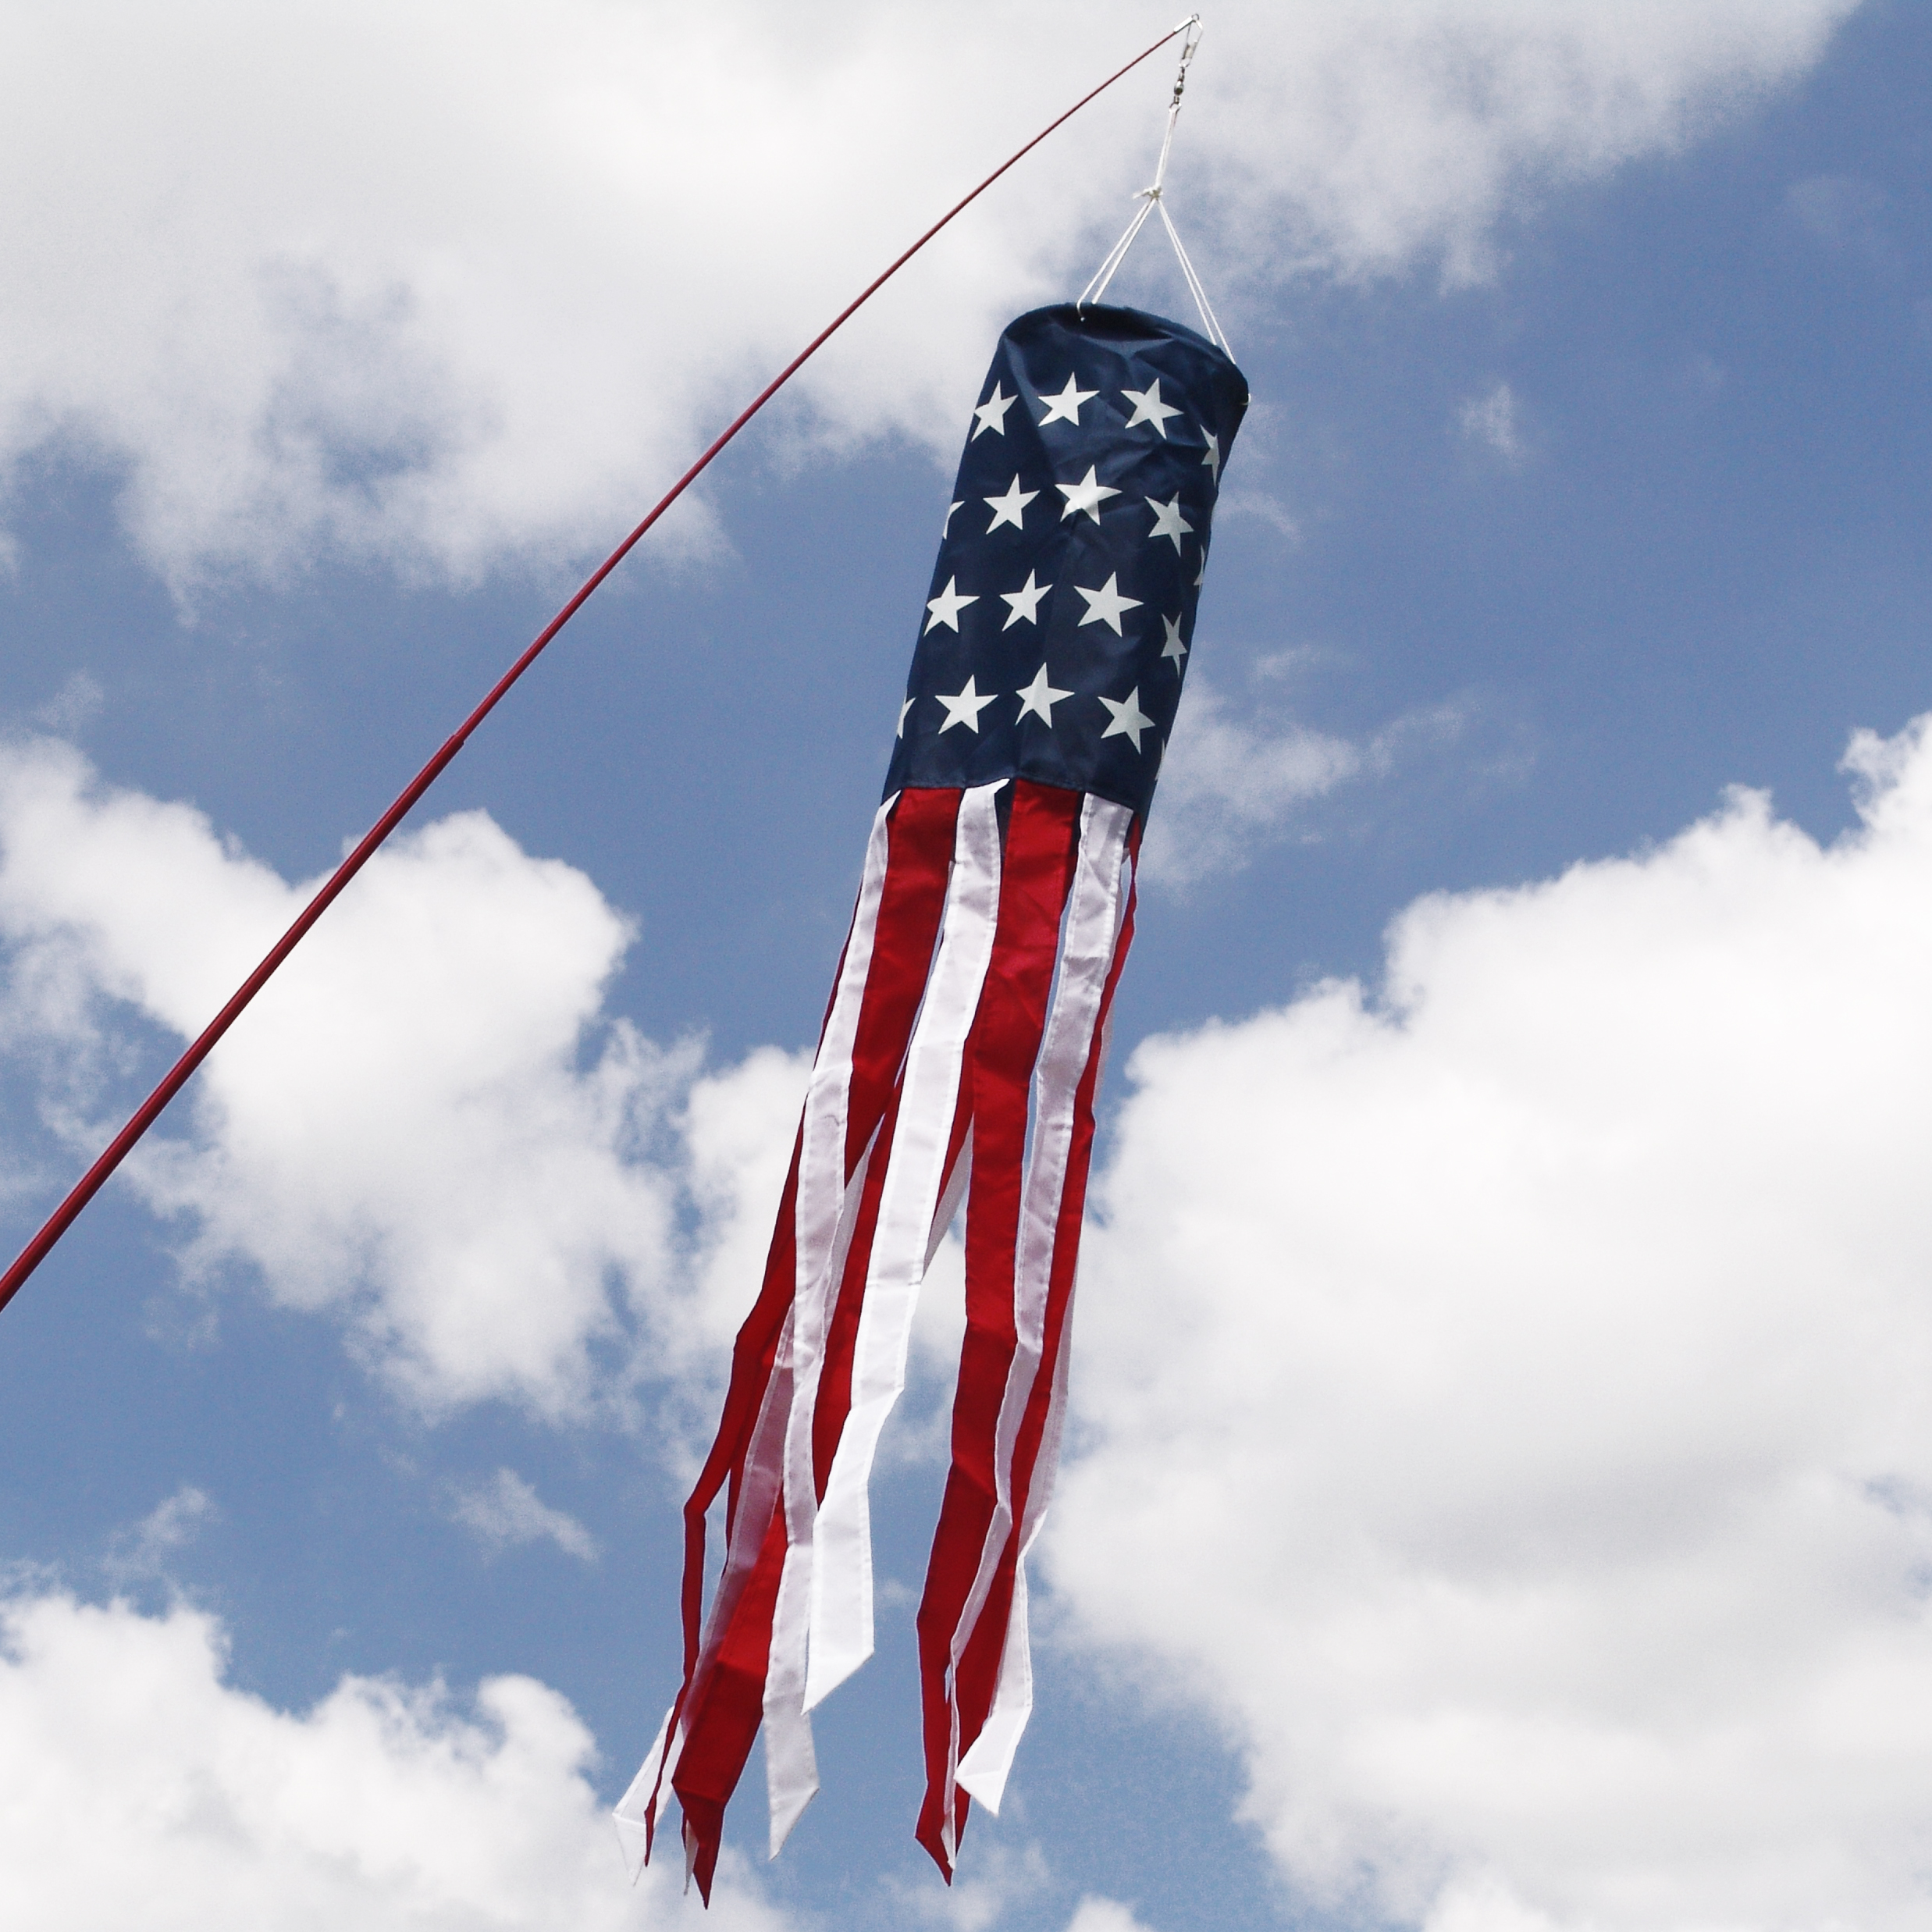 American Flag 40 Inch Windsock Printed Stars Wind Sock by In The Breeze